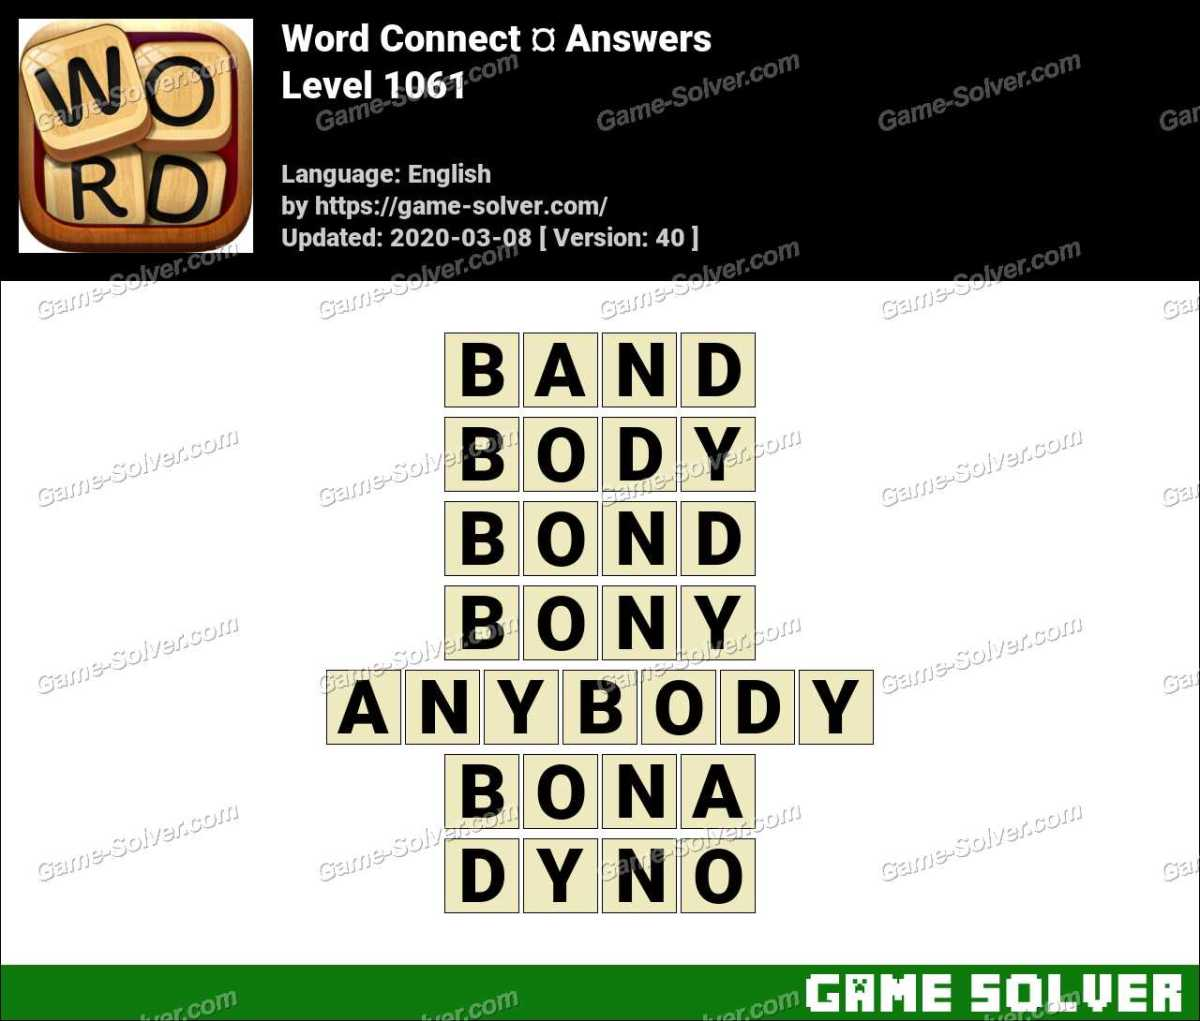 Word Connect Level 1061 Answers